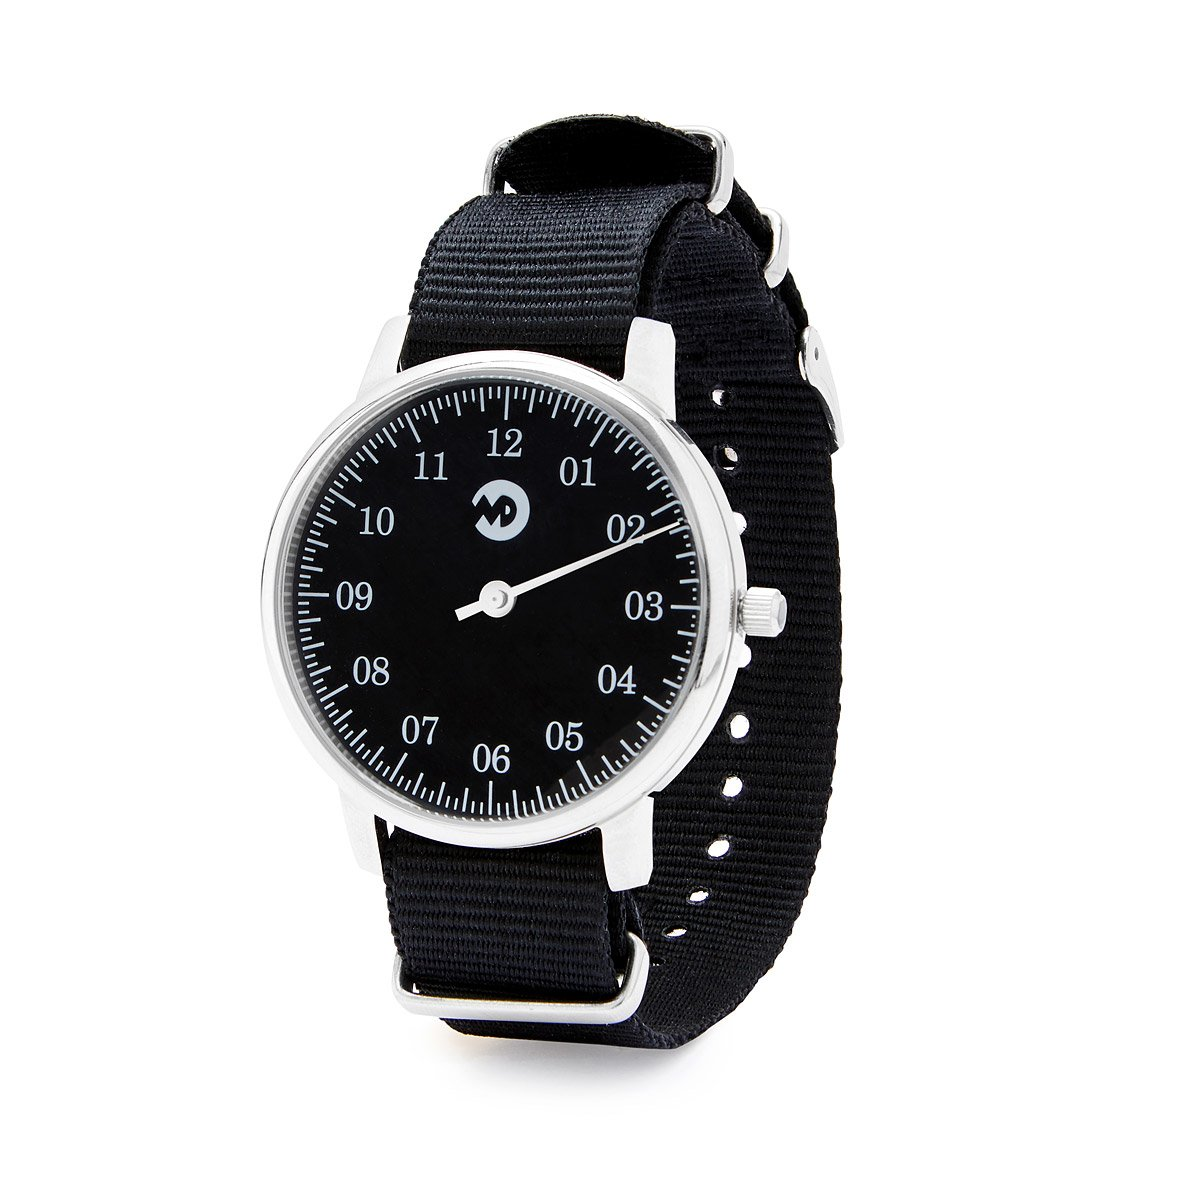 sports best shopping cool outdoor army high designer watch watches timepiece black running wristwatches leader unique popular silver product new end fashion